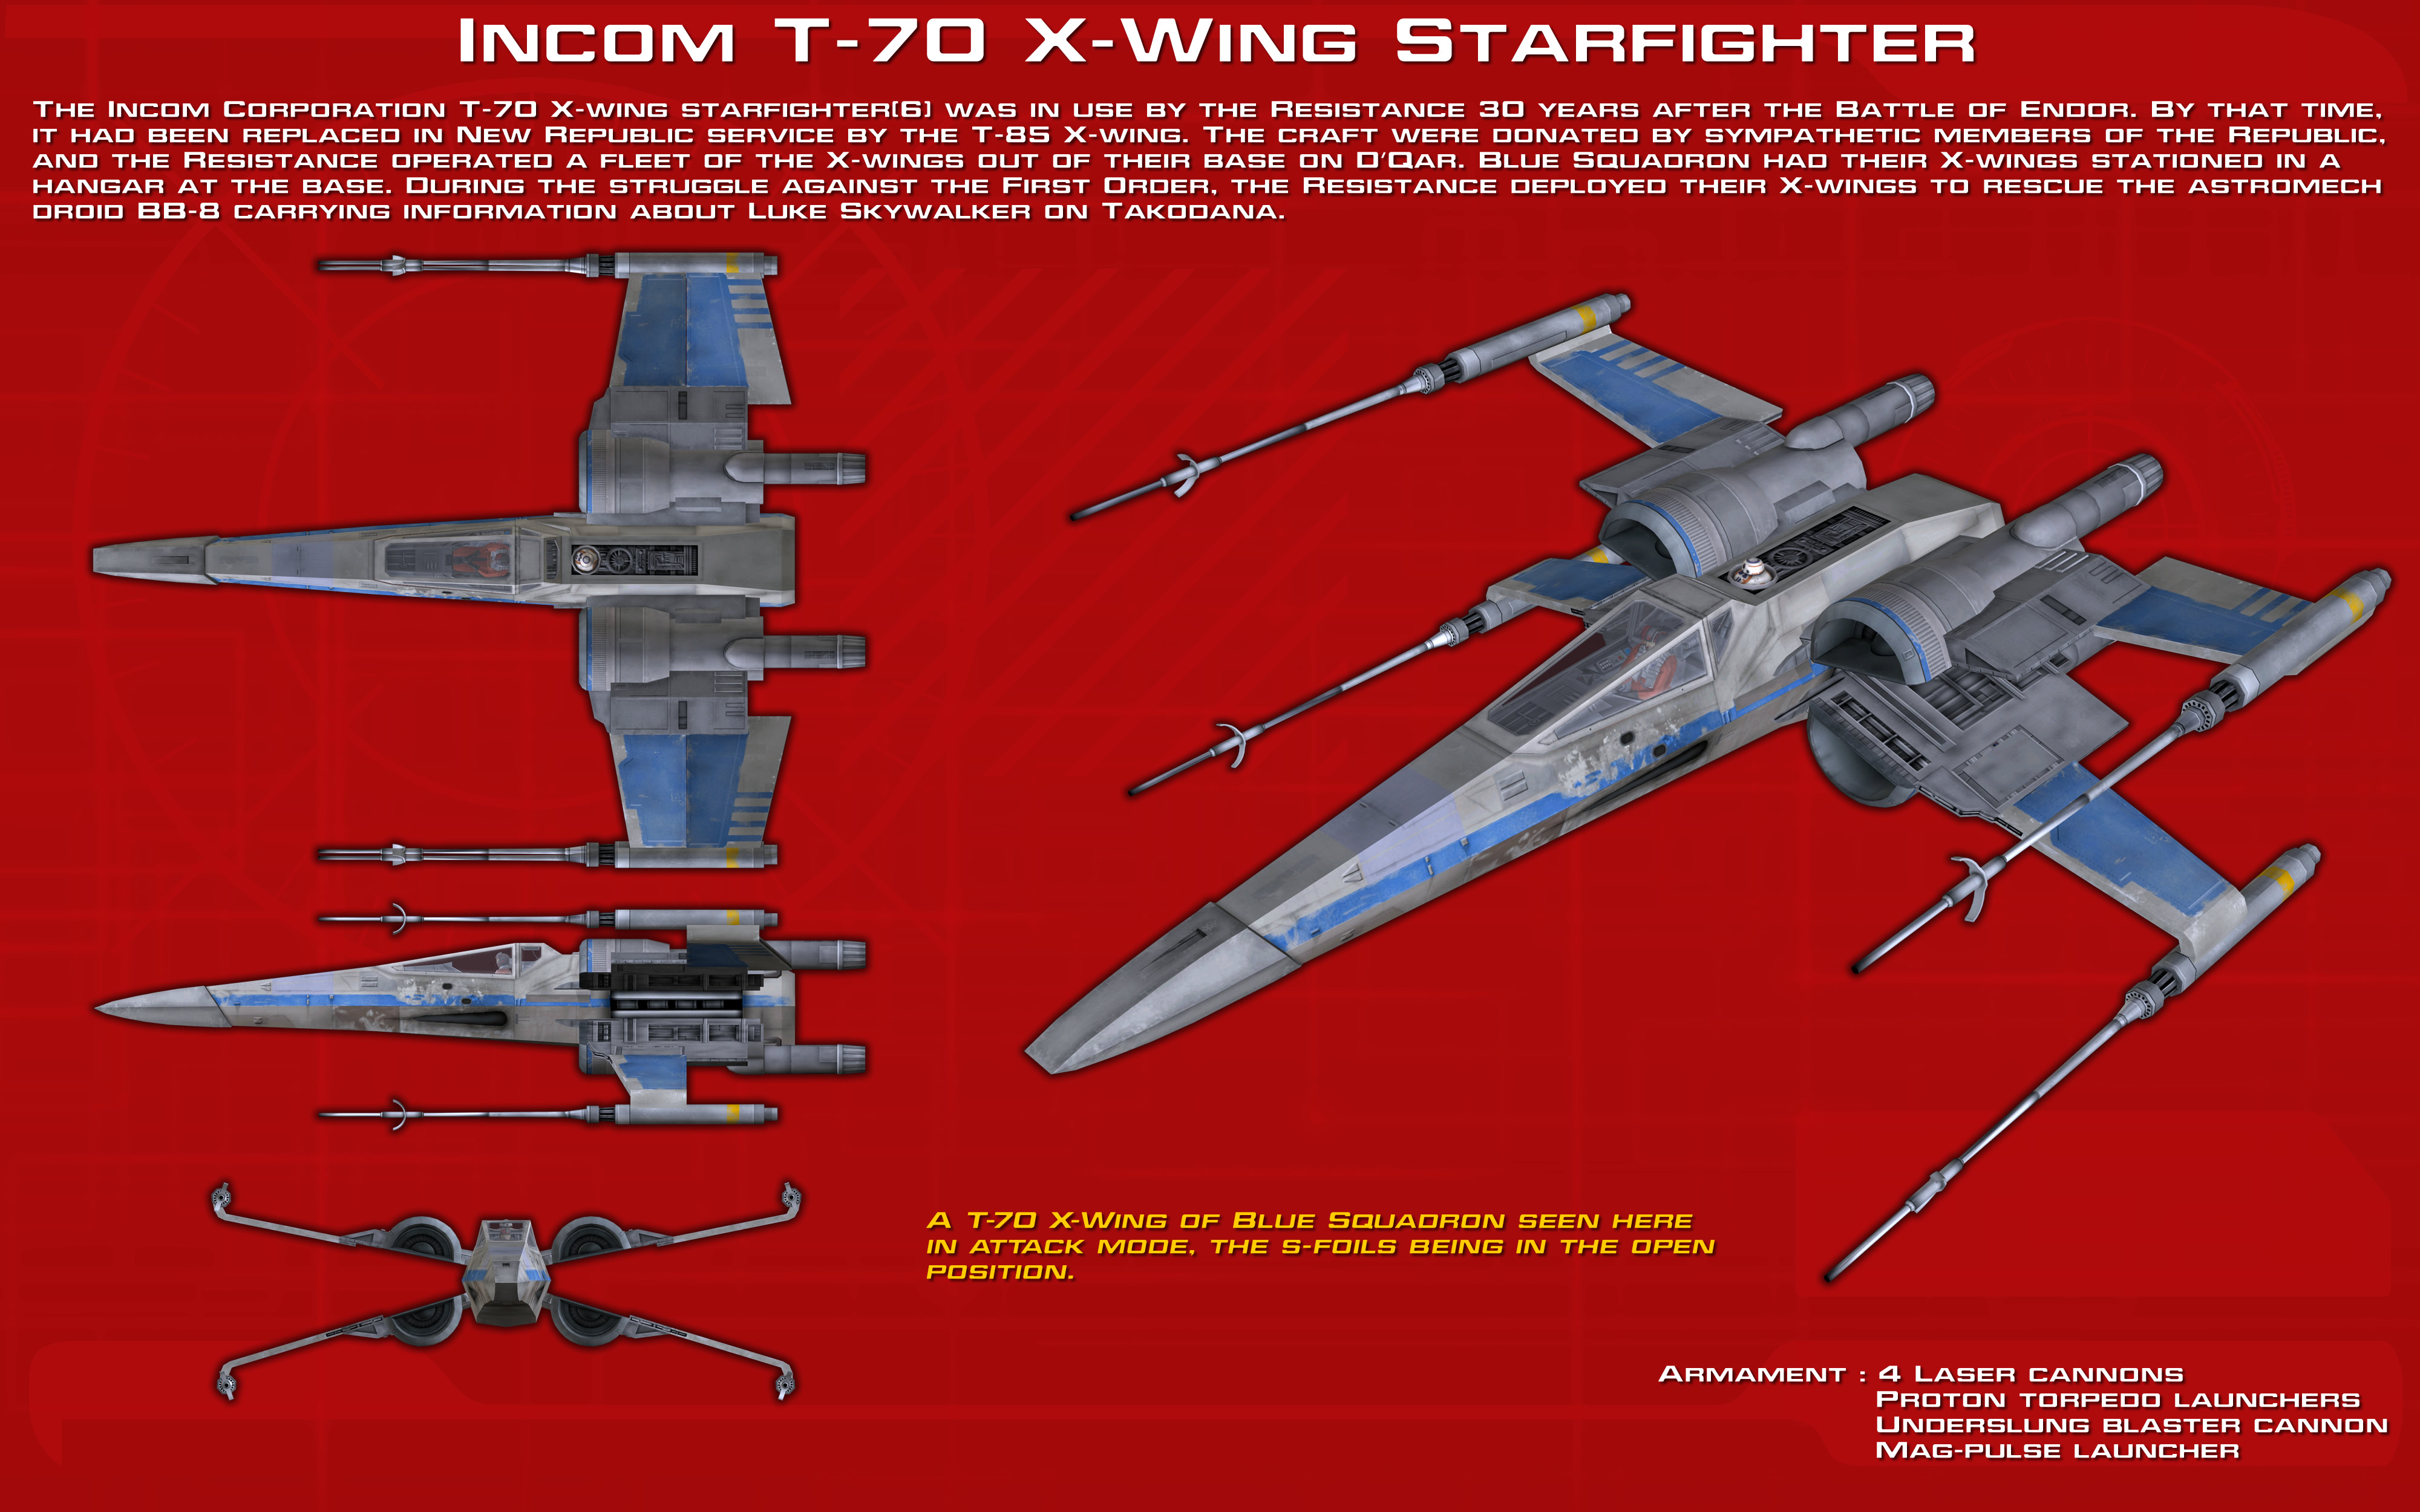 Incom T-70 X-Wing Starfighter ortho [1][Update] by ... on b-wing schematics, at-at schematics, a wing fighter schematics, tie interceptor schematics, minecraft schematics, y-wing schematics, halo warthog schematics,